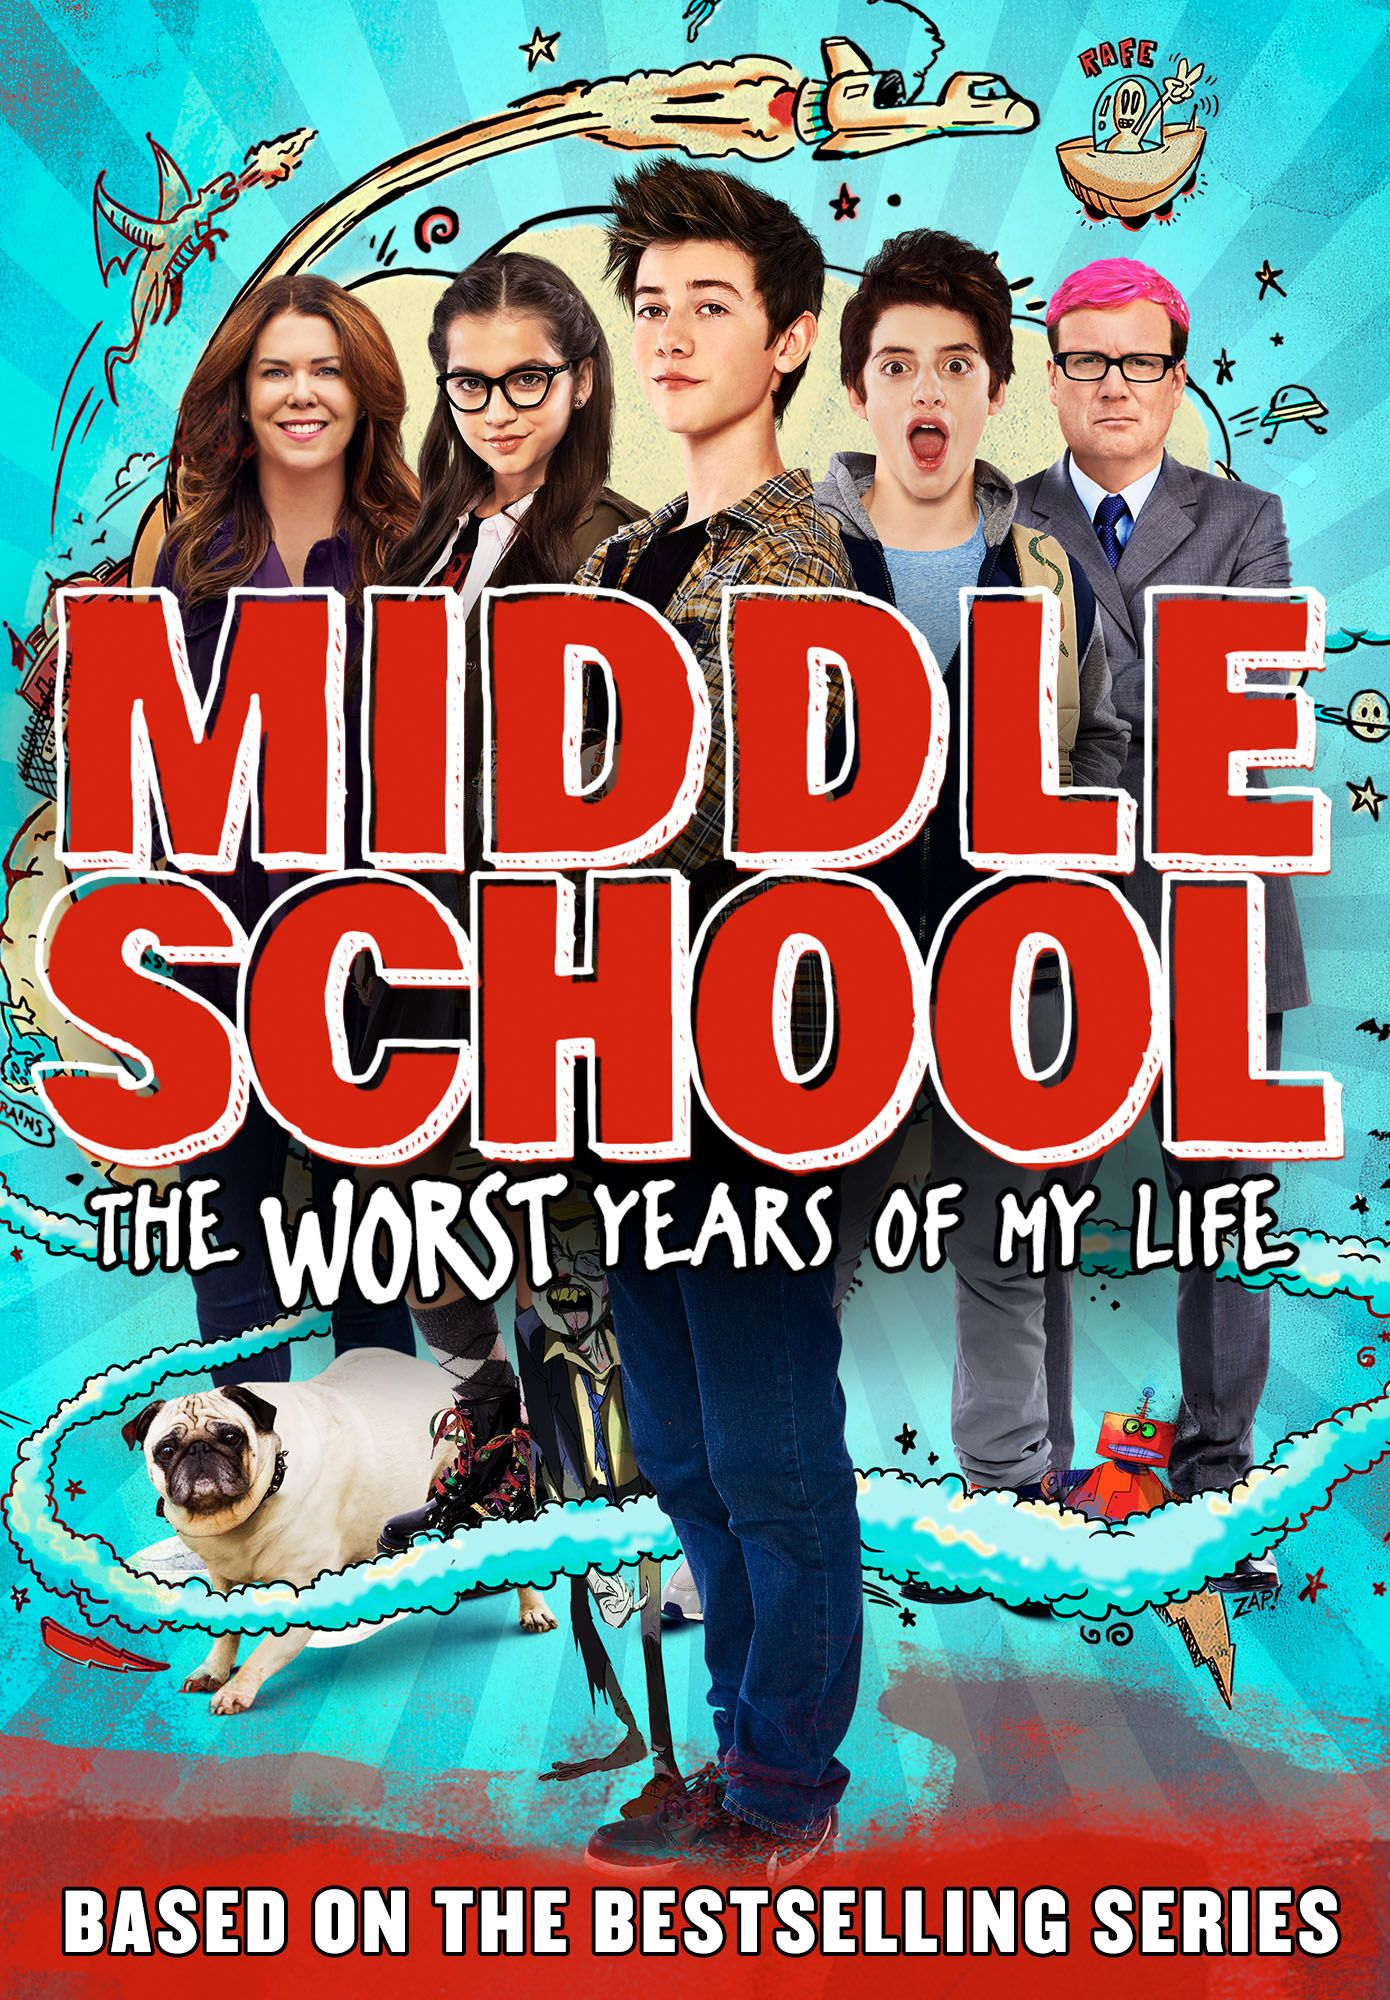 Rent Middle School: The Worst Years of My Life and other new DVD releases  and Blu-ray Discs from your nearest Redbox location.